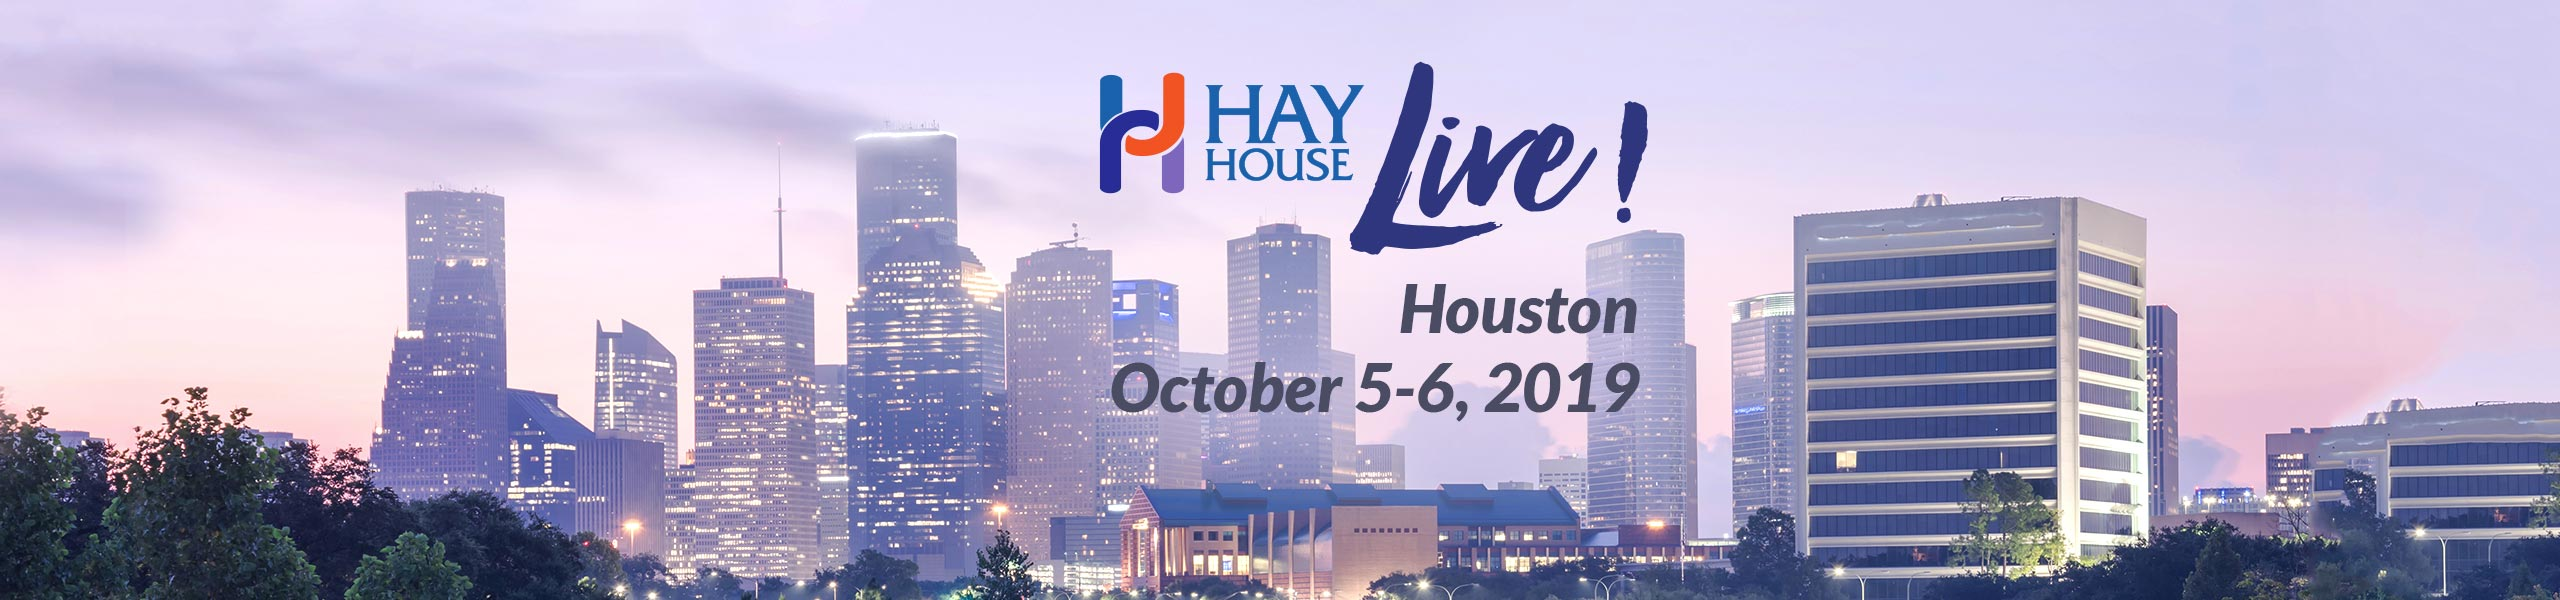 Hay House Live! Houston 2019 - Rebecca Cambell